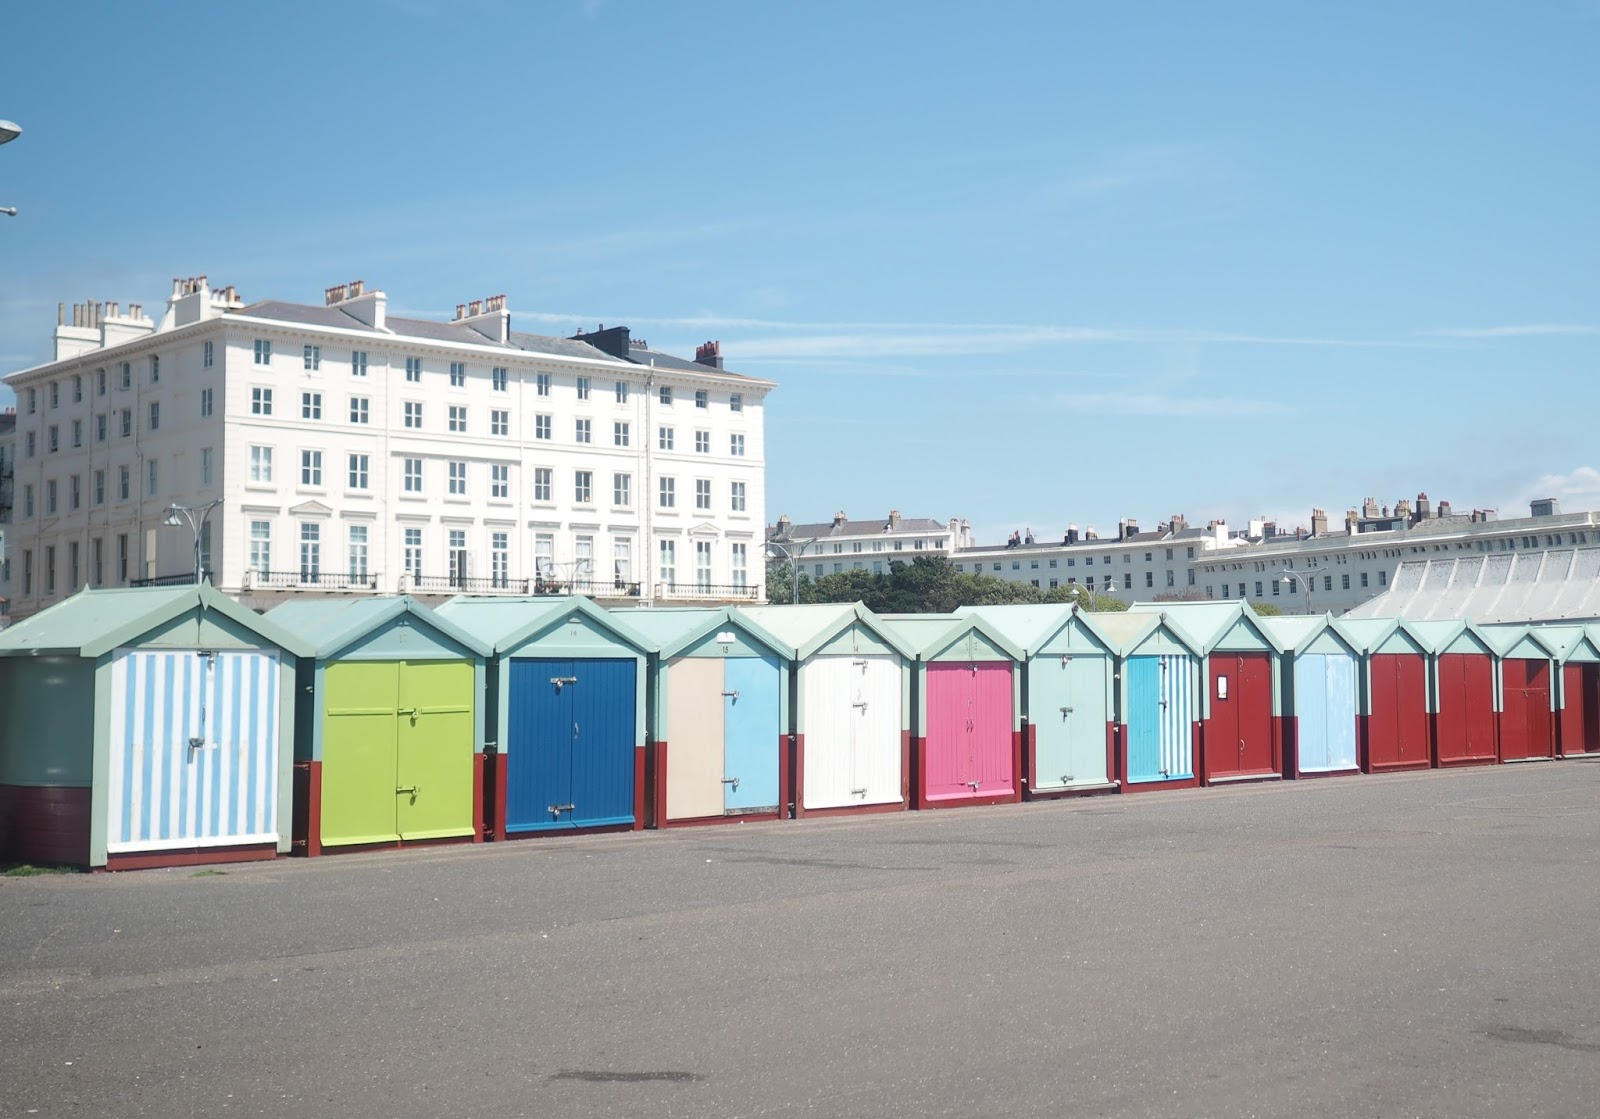 Hove Beach Huts, Brighton